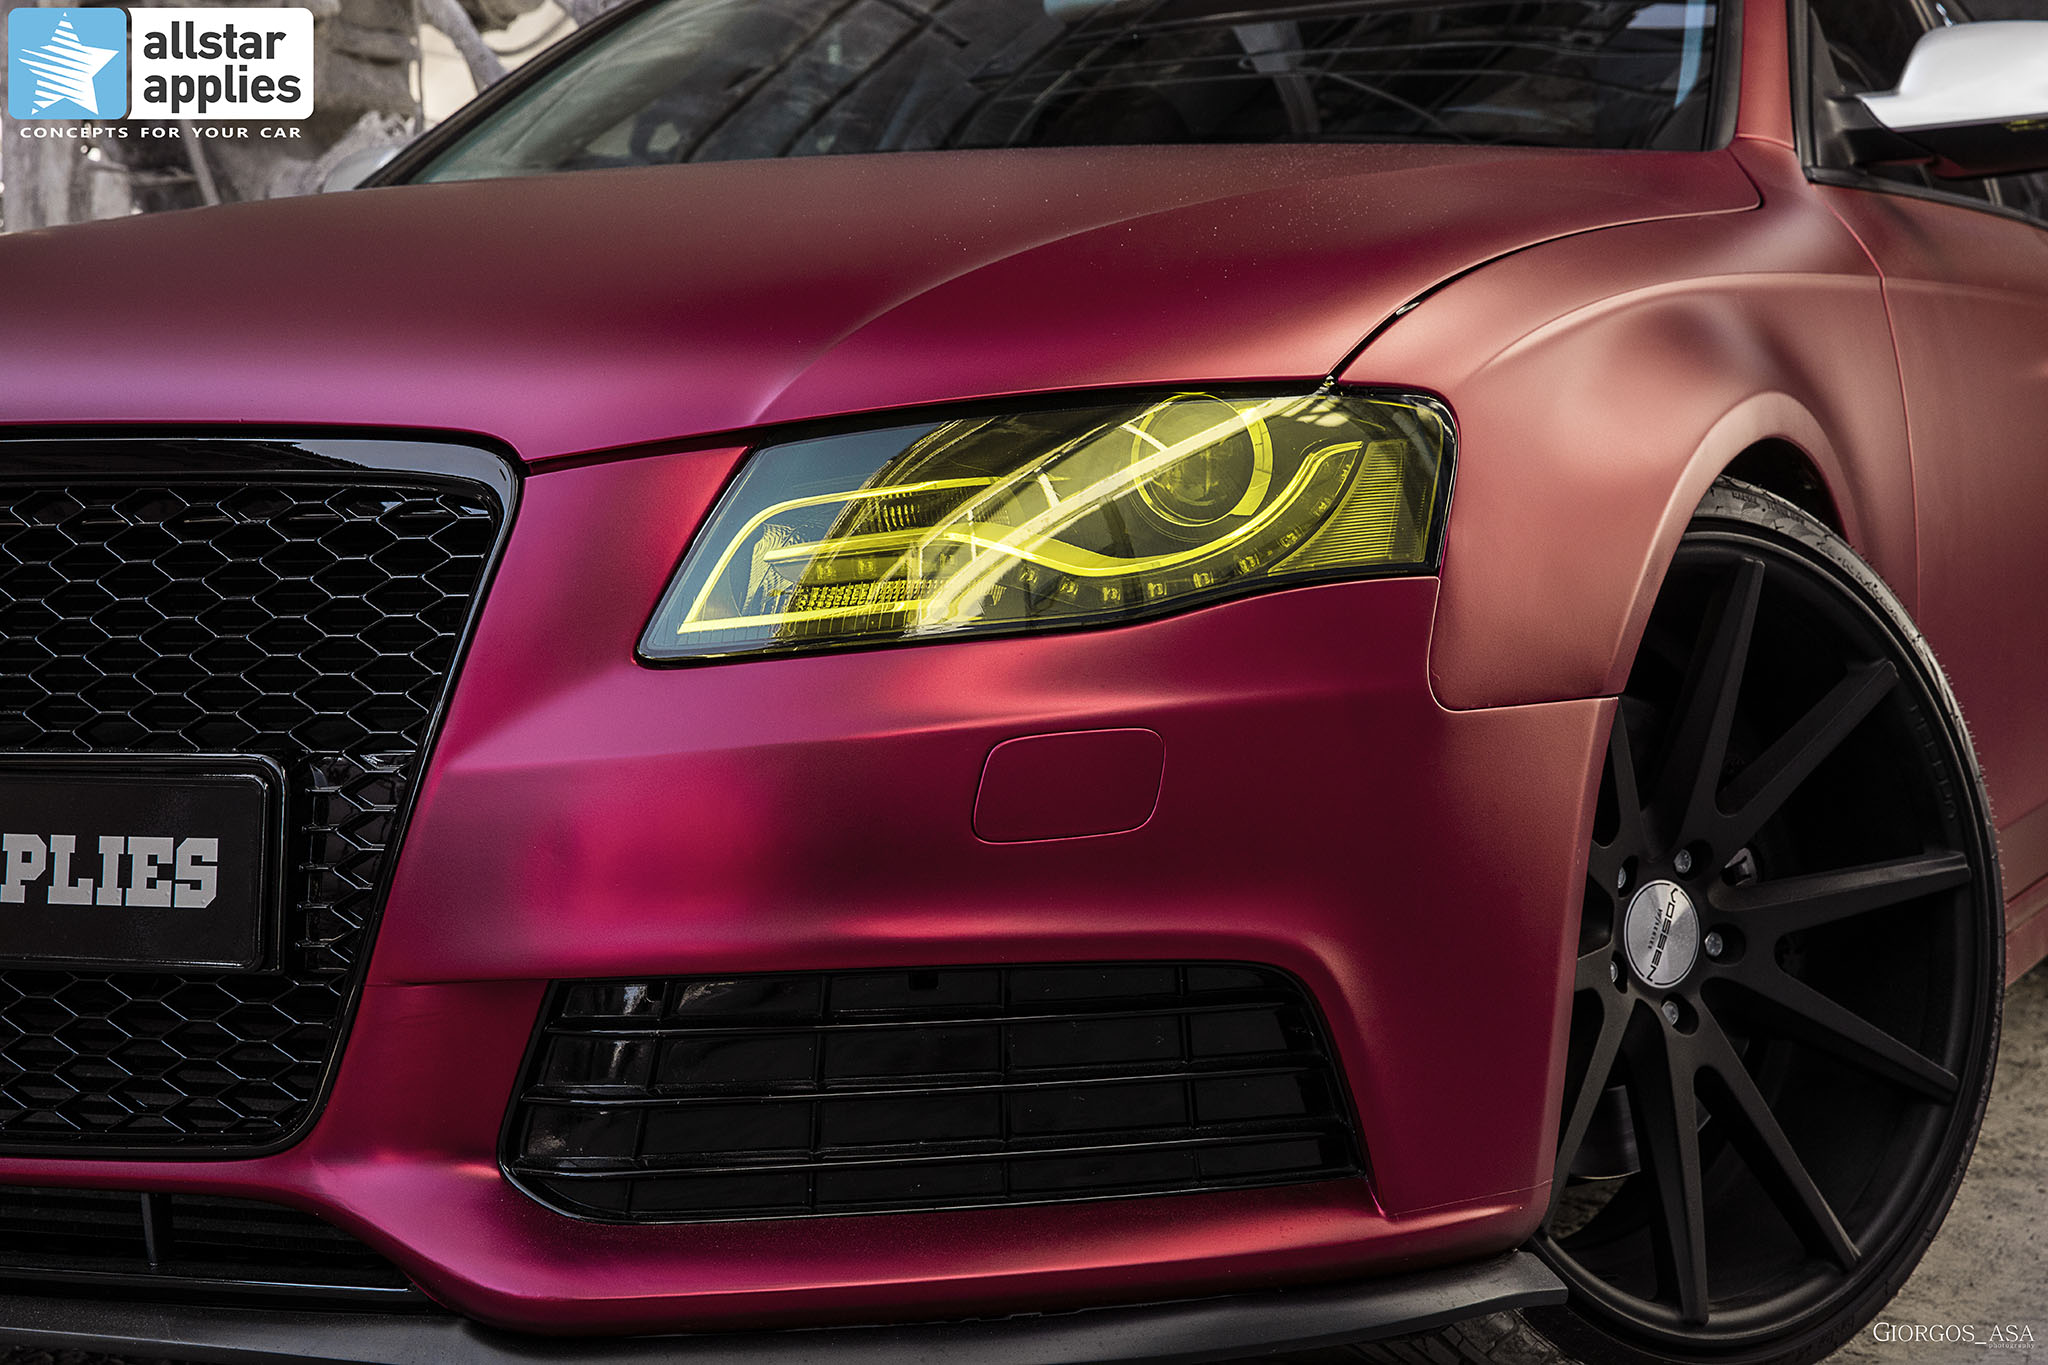 Audi A4 - Cherry Red Chrome (4)